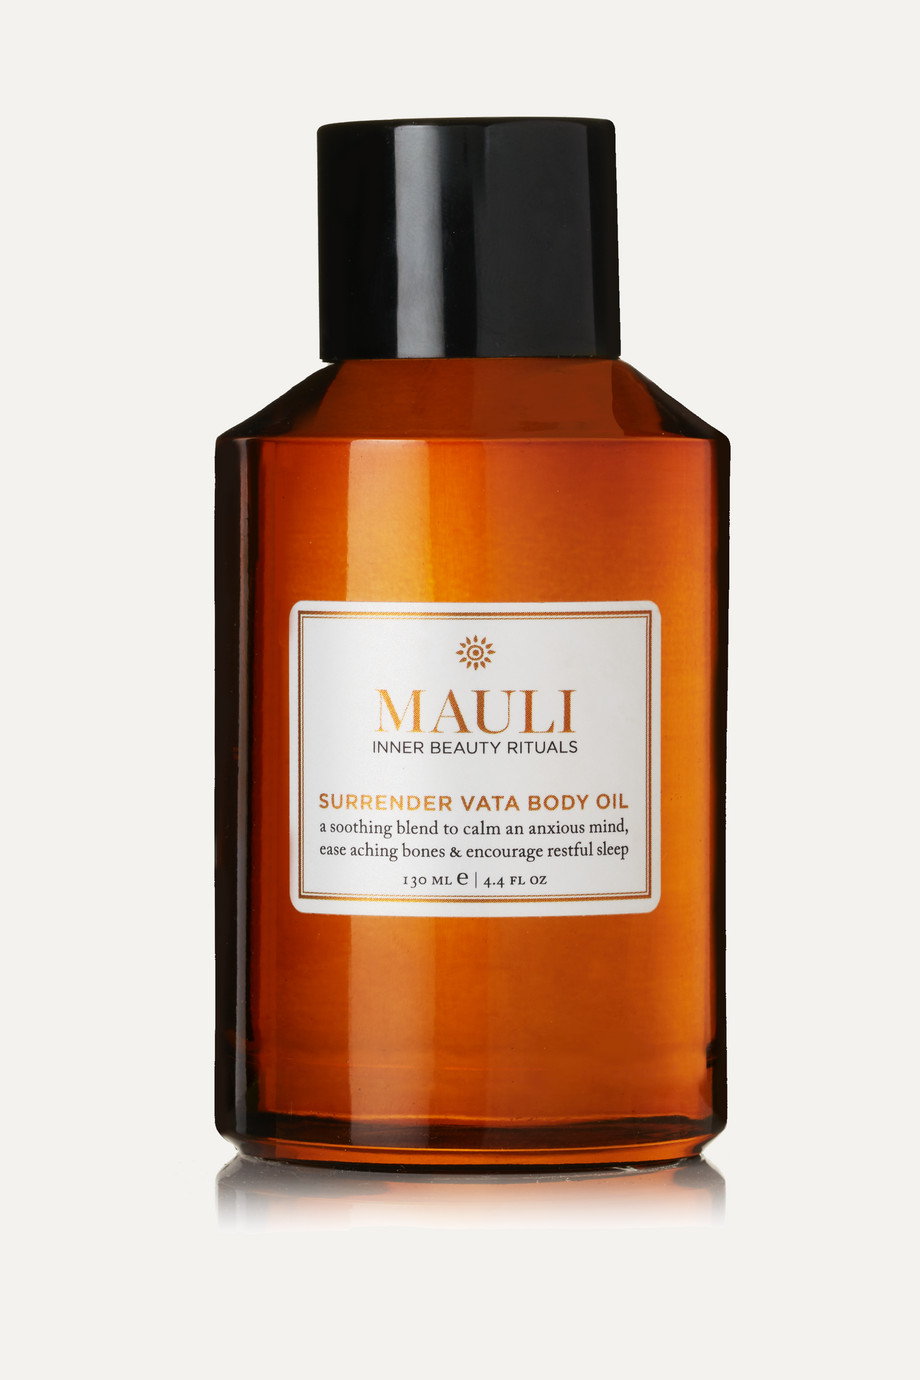 Mauli Rituals Surrender Vata Body Oil, 130ml